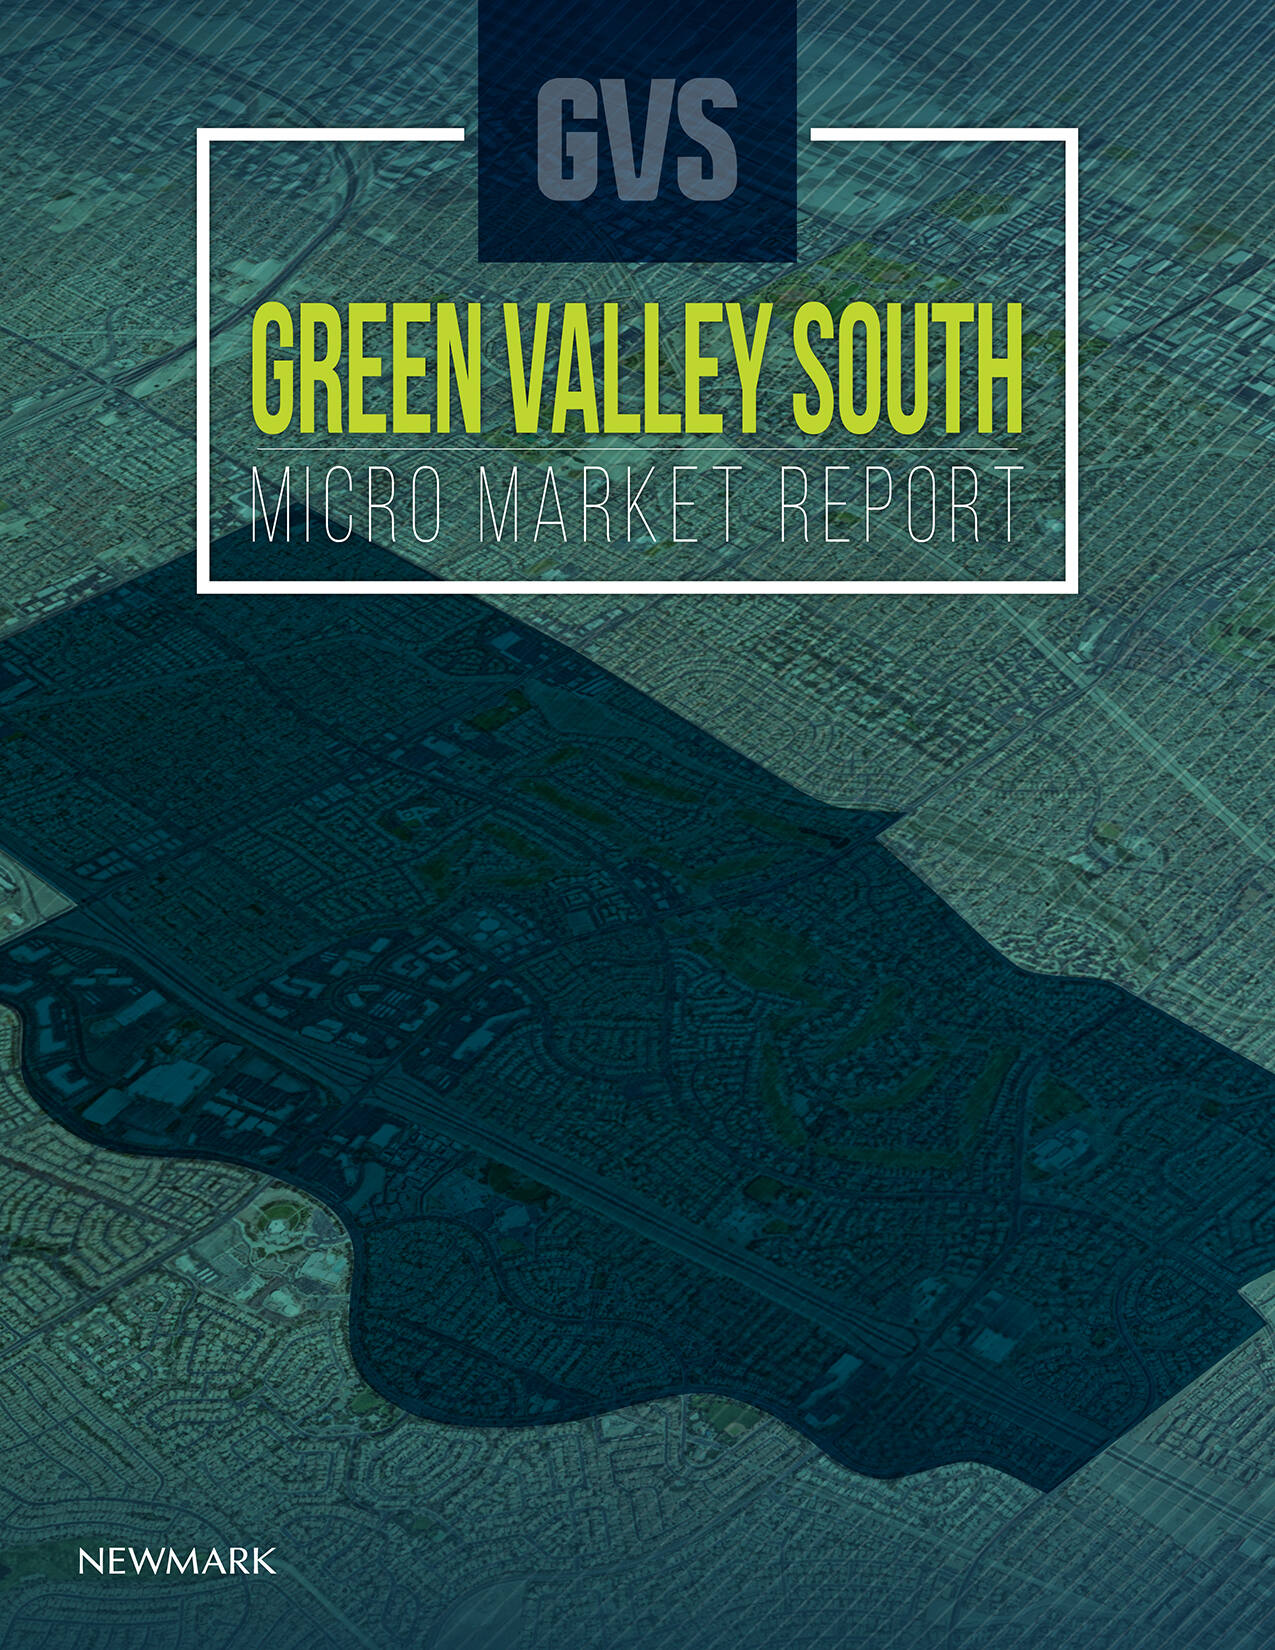 Green Valley South - Henderson, Nevada Market Reports Report document image